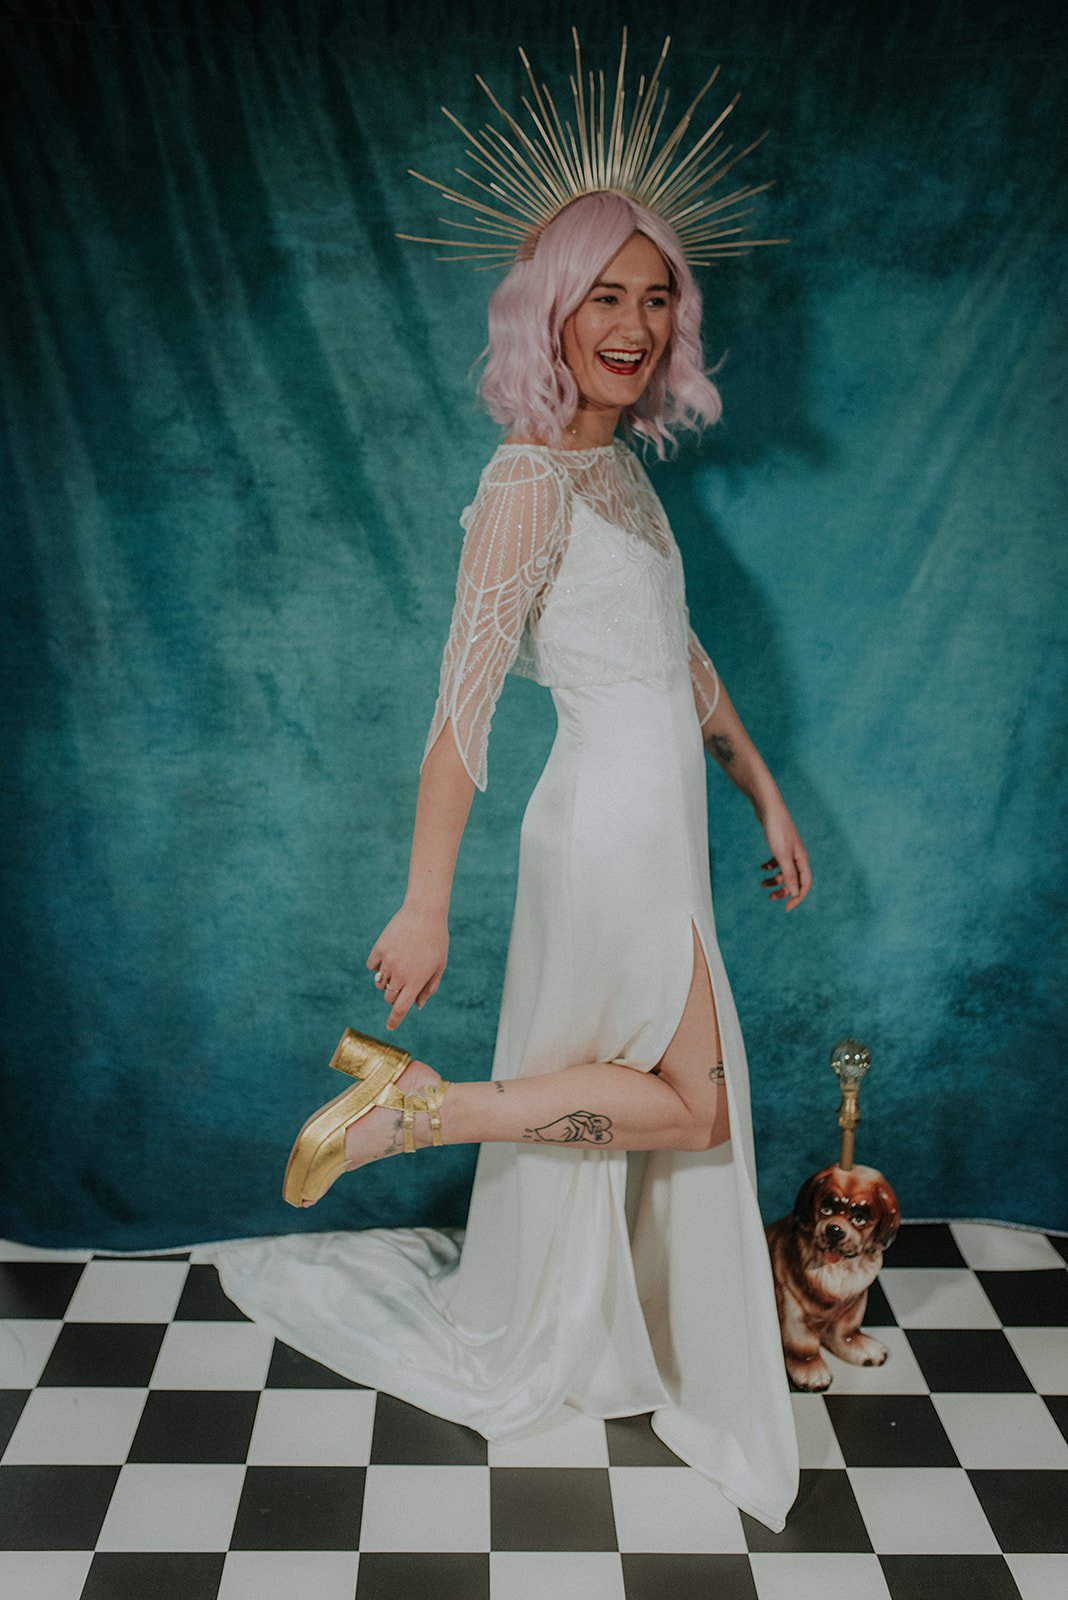 Lucy Cant Dance Cosmic Rodeo Alternative wedding dresses separates Megan Elle Photography 00018.jpg